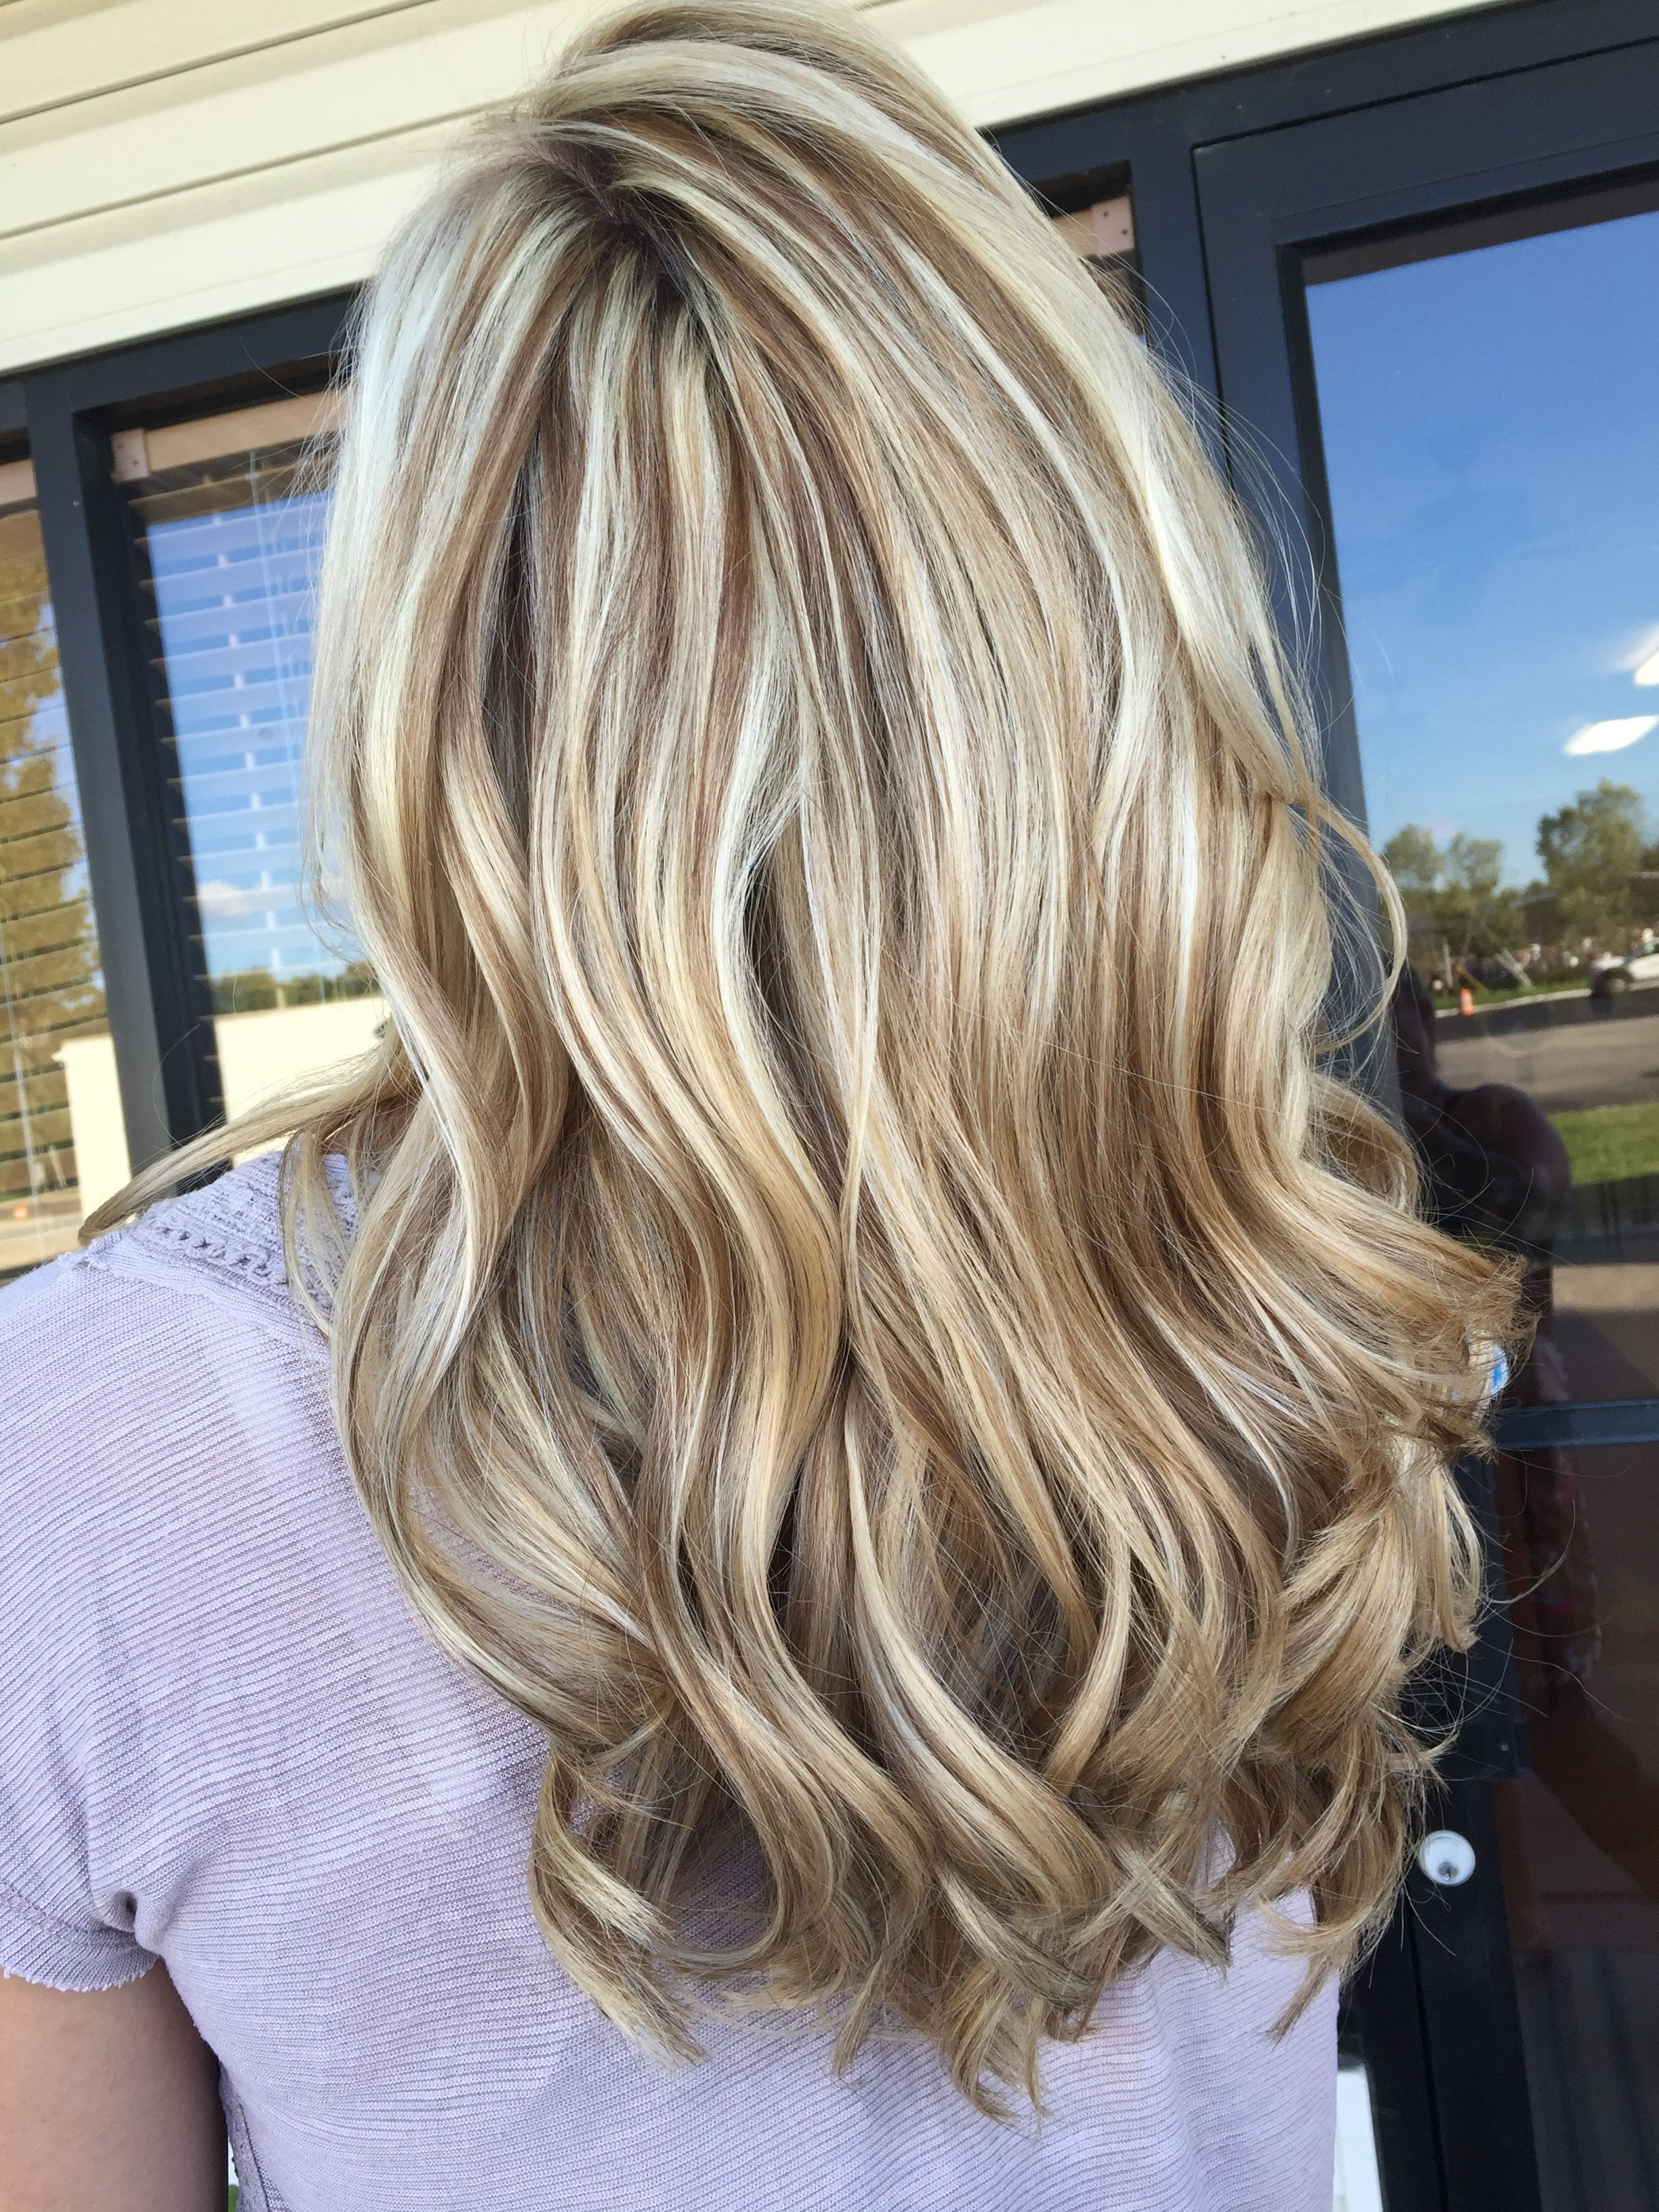 Ice Blonde, Chocolate Brown Throughout Well Known Light Chocolate And Vanilla Blonde Hairstyles (View 9 of 20)